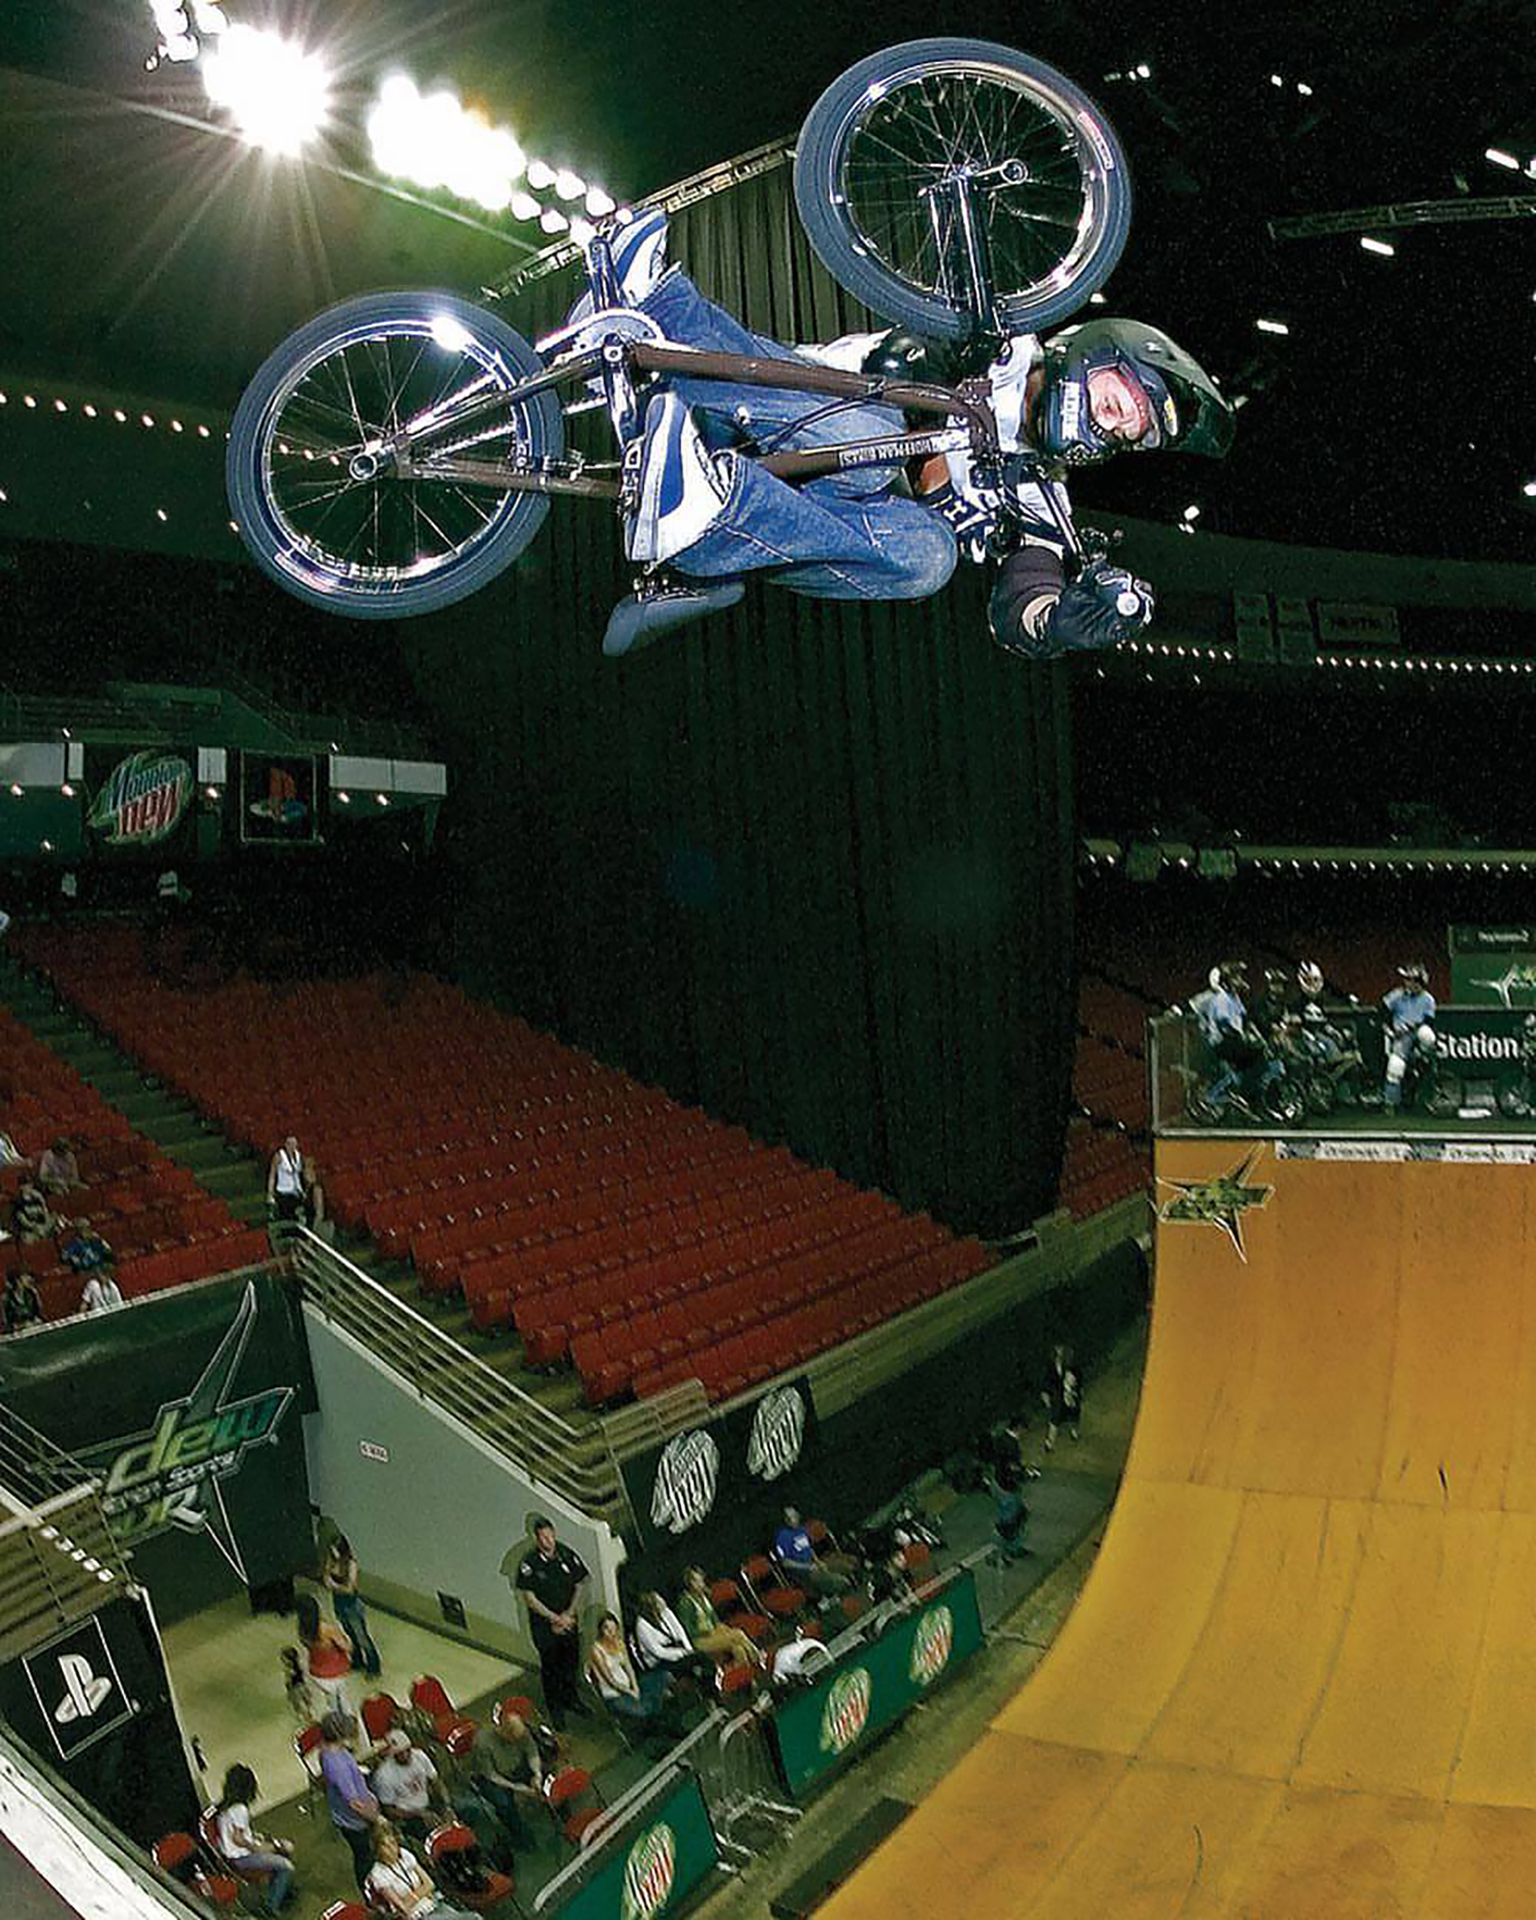 Jim Burgess, invert on the Dew Tour, 2006.